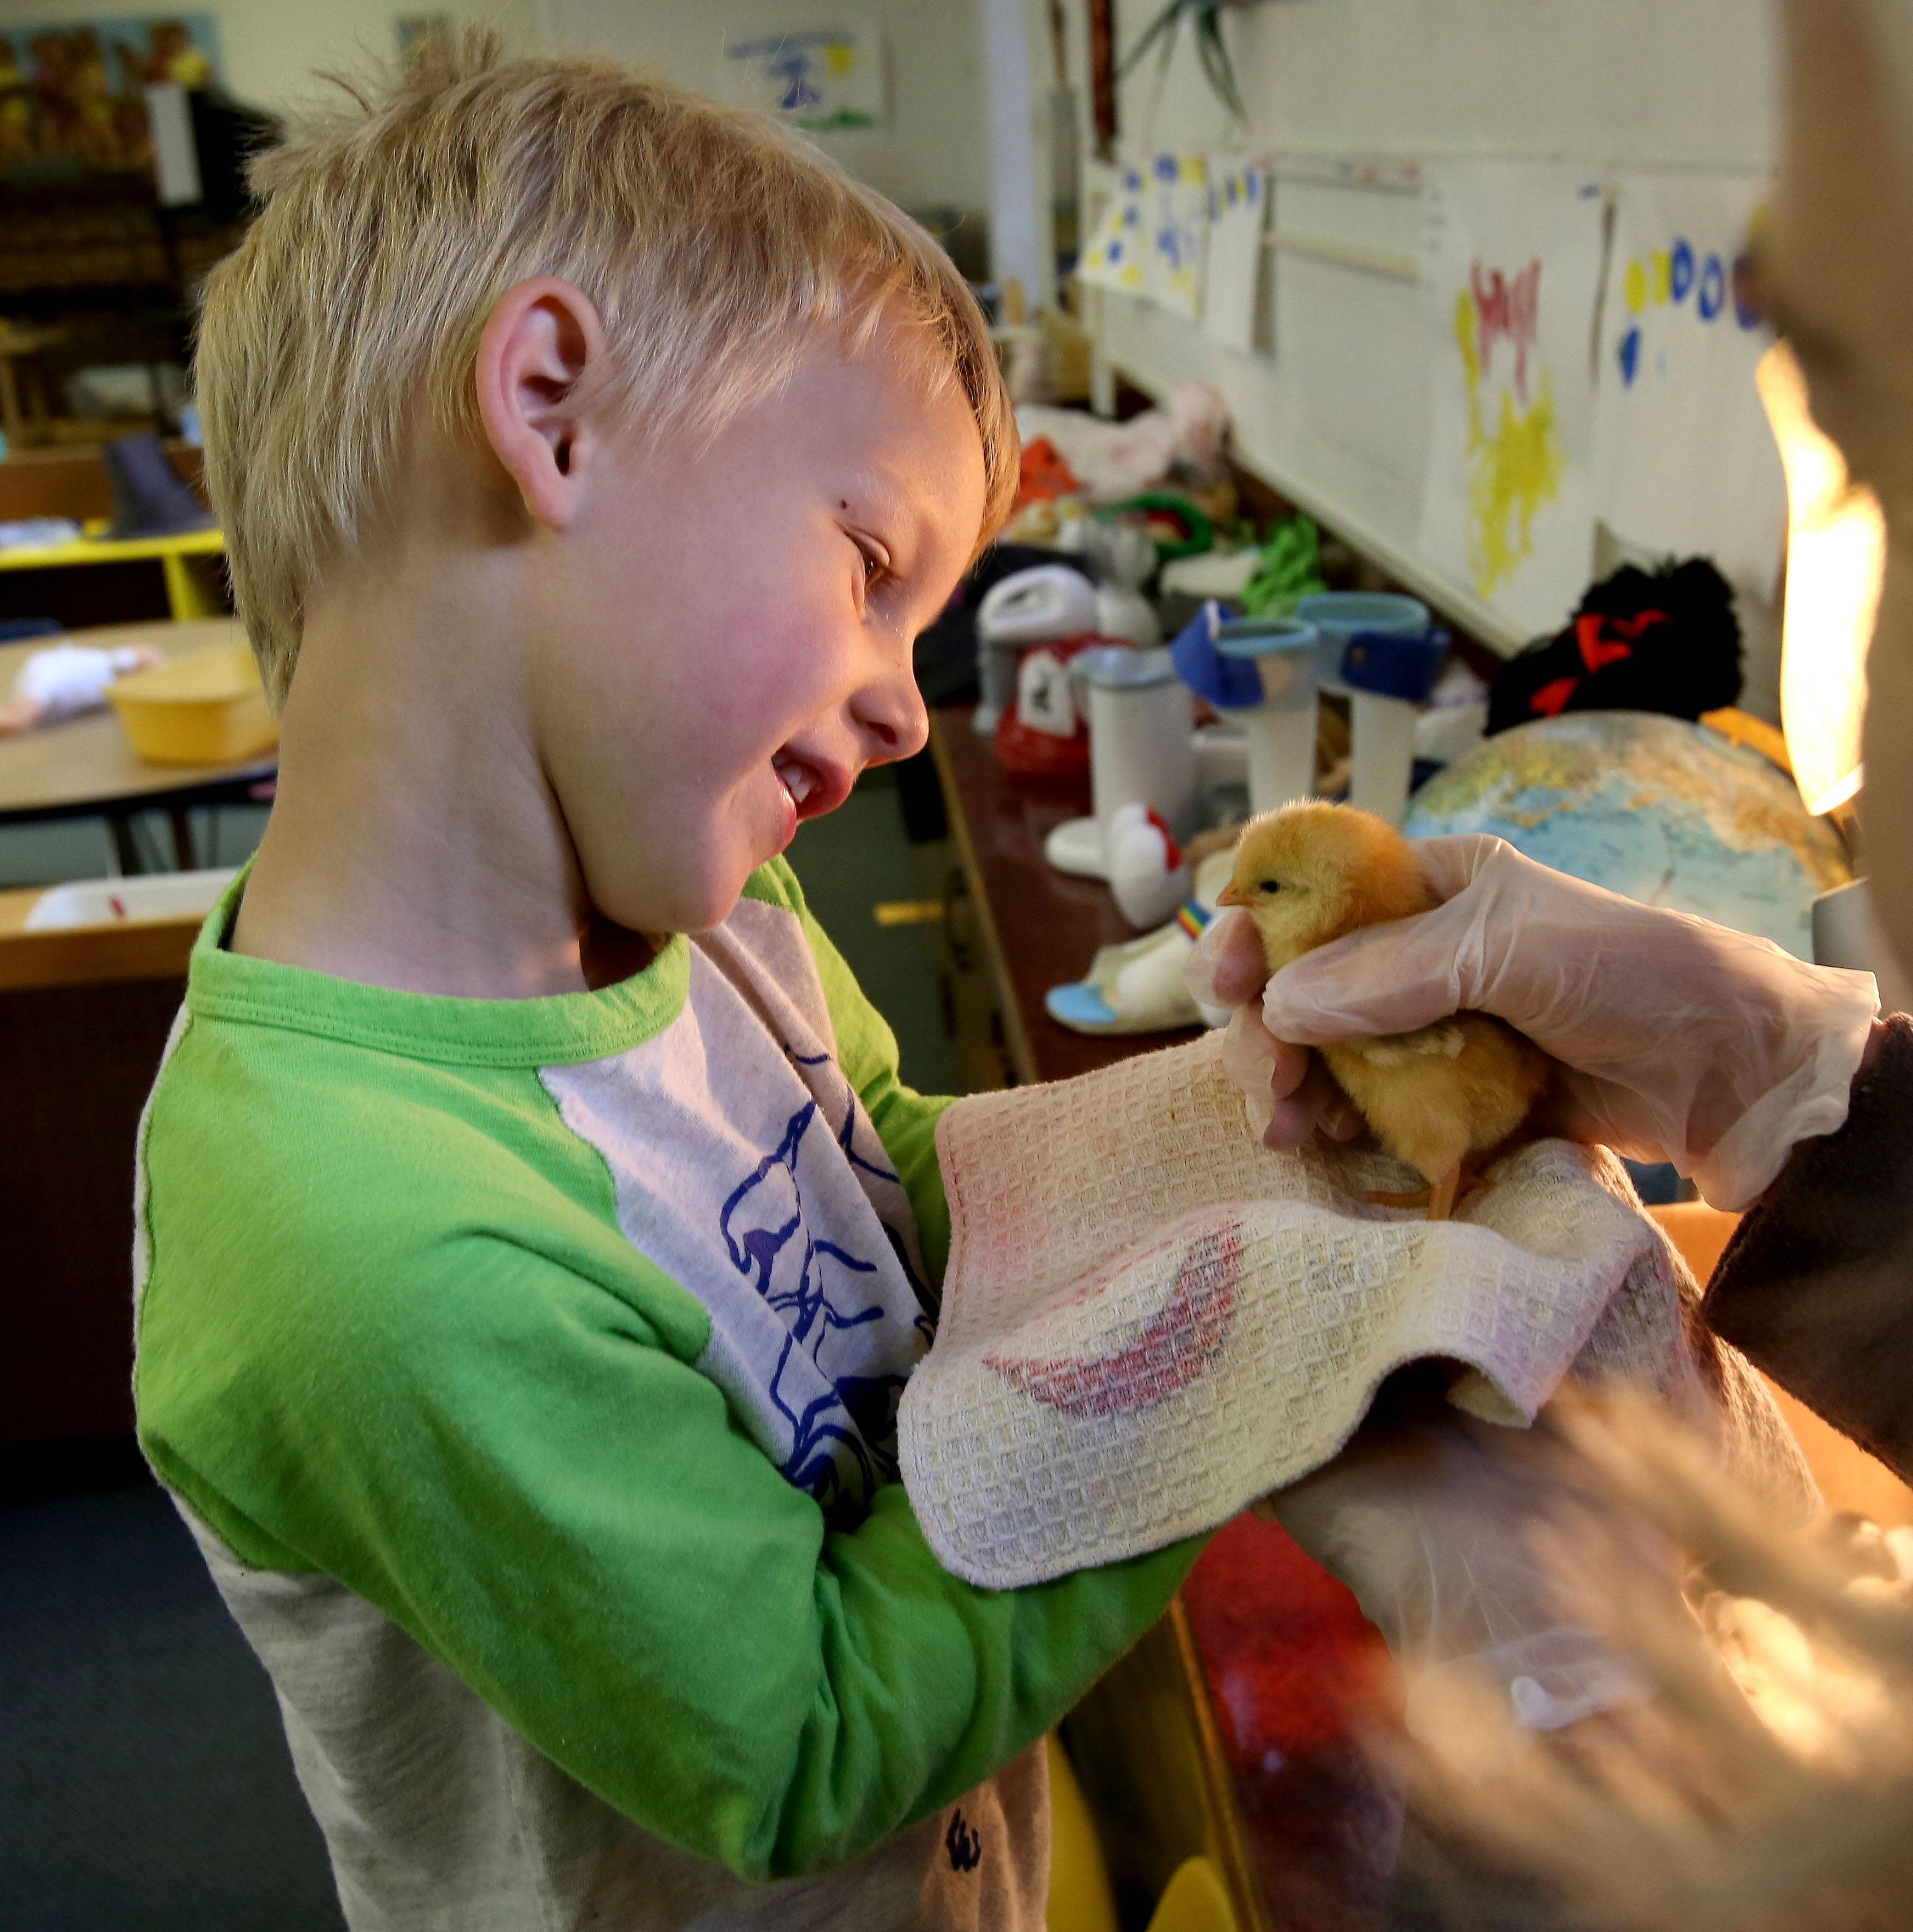 Four-year-old Brady Hamman gets a closer look at a chick at the Loretto Preschool and Retreat in Wheaton. They incubated the chicks for 21 days in the class.